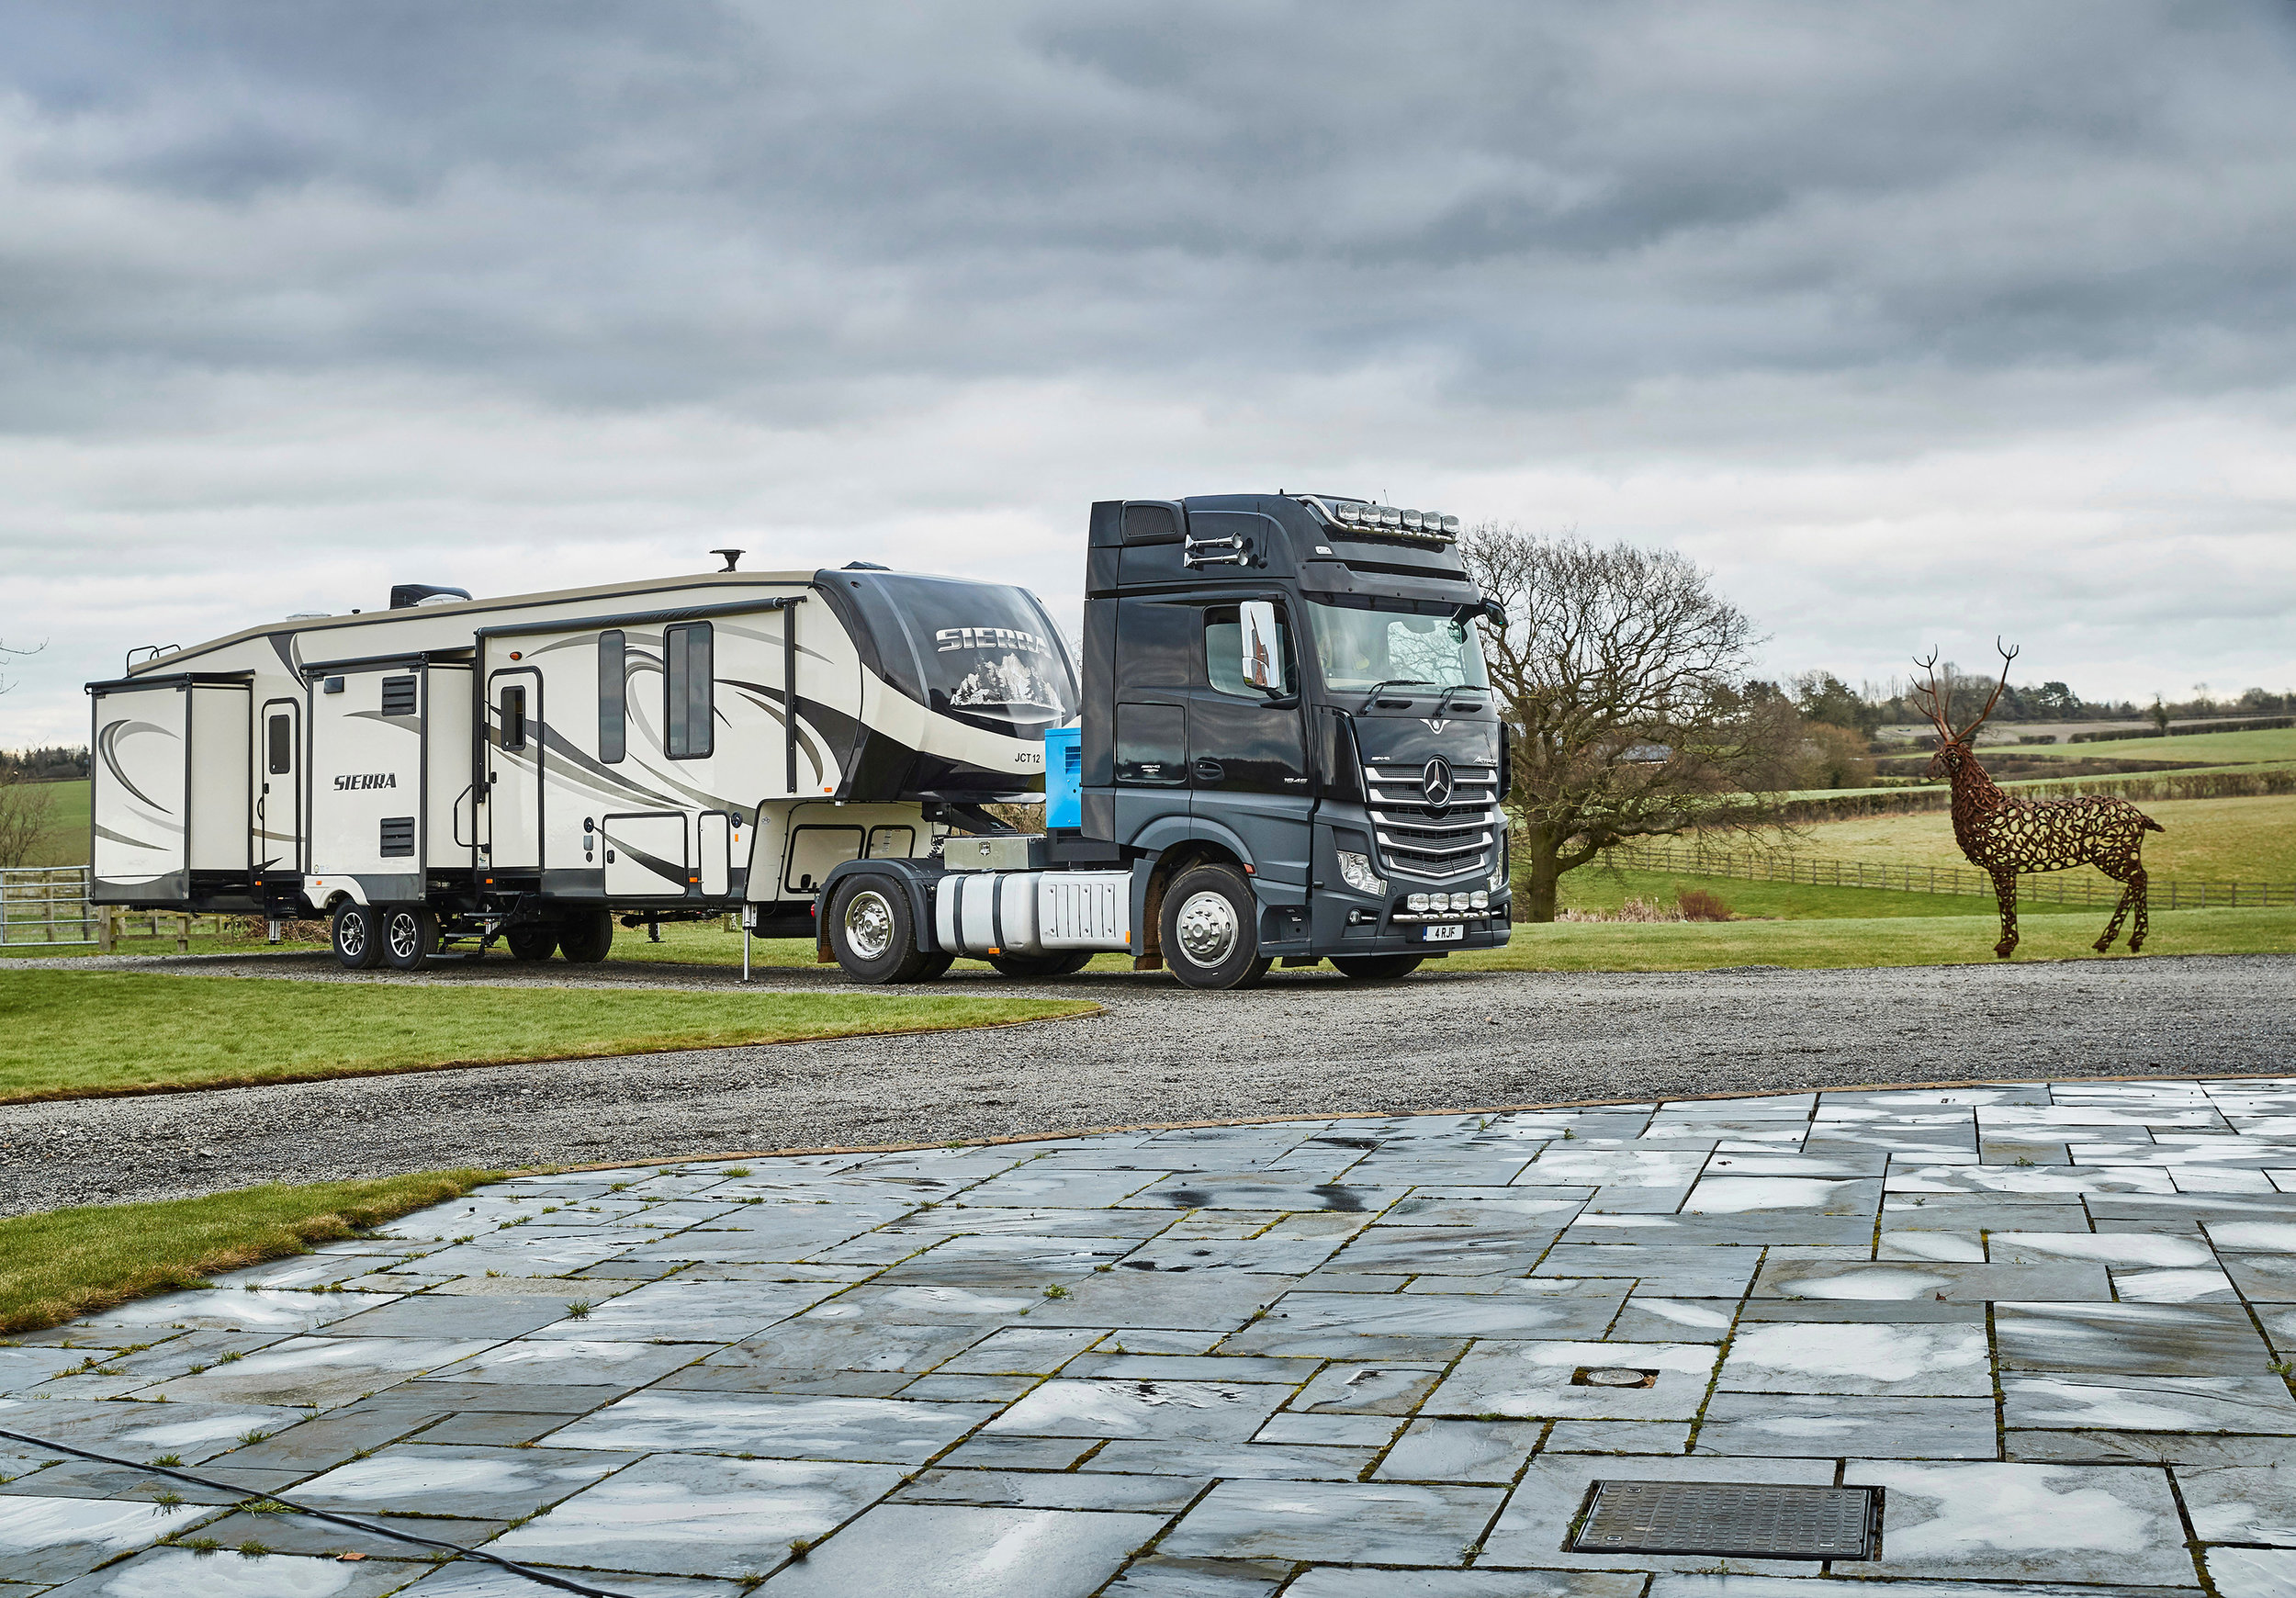 american-rvs-motorhomes-for-hire-uk-europe-1.jpg